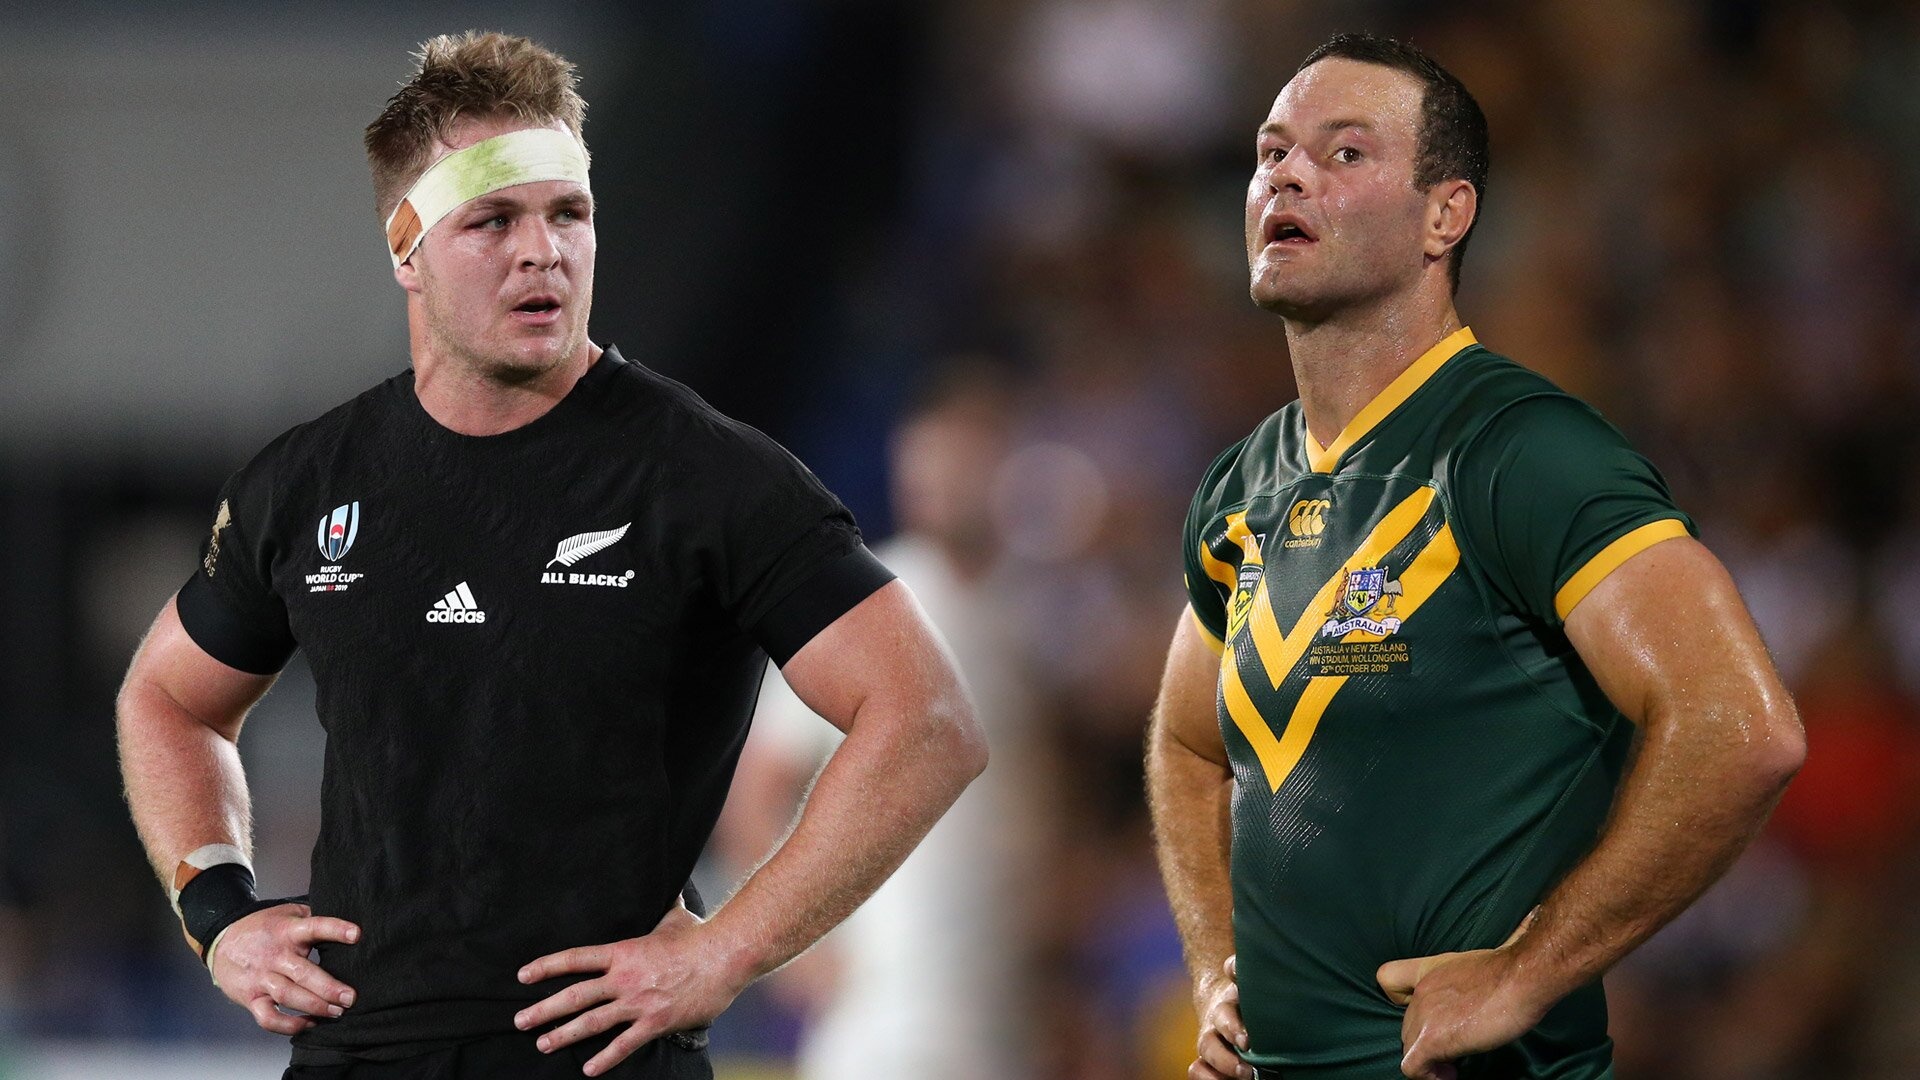 Early reveal means cross-code All Blacks v Kangaroos clash likely already 'dead in the water'